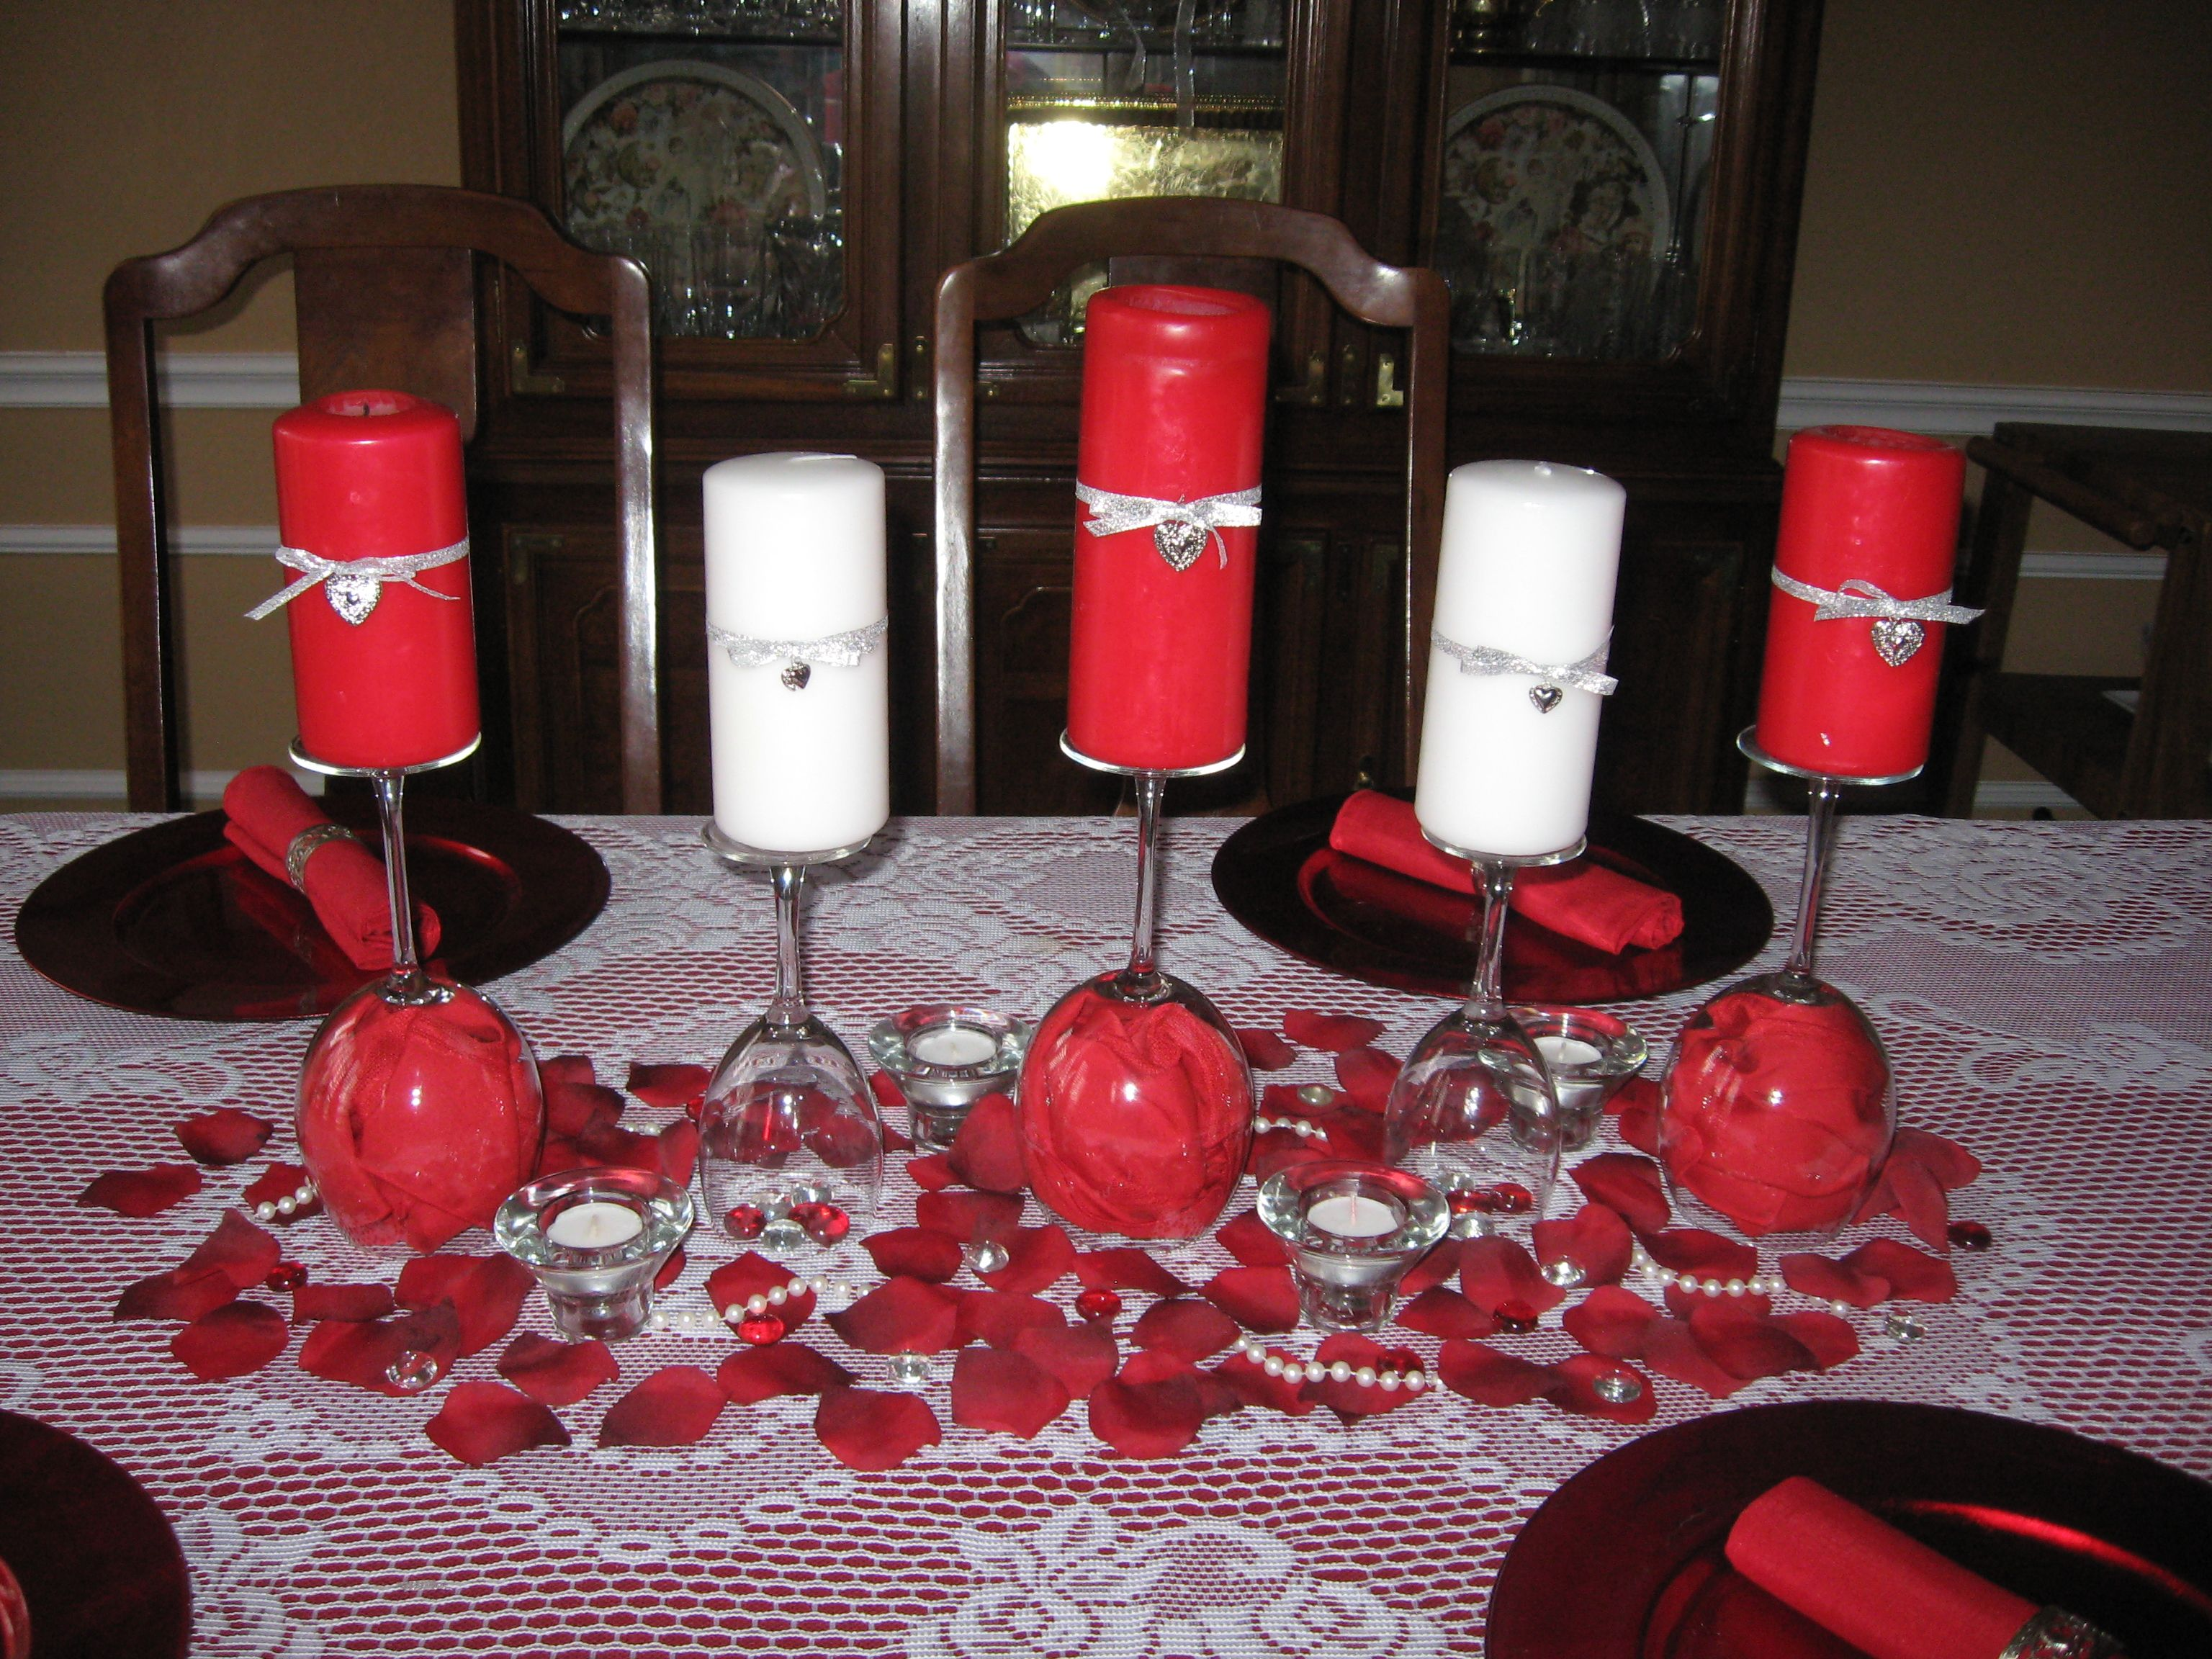 Pin By Kristin Skaggs On Valentines Day Wine Glass Candle Holder Wine Glass Candle Christmas Candle Decorations